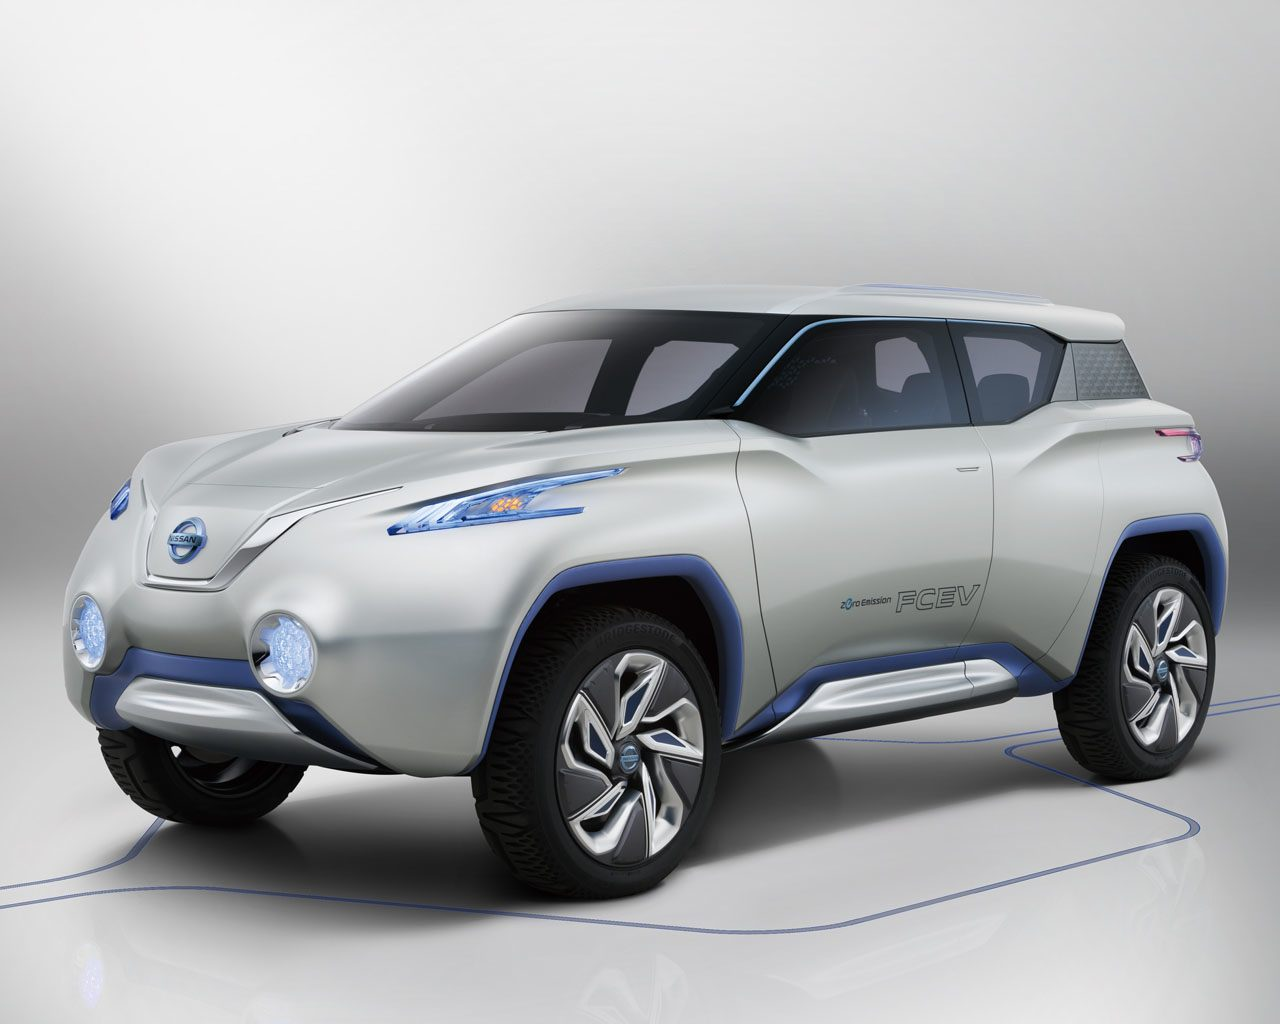 Nissan is ready for hydrogen